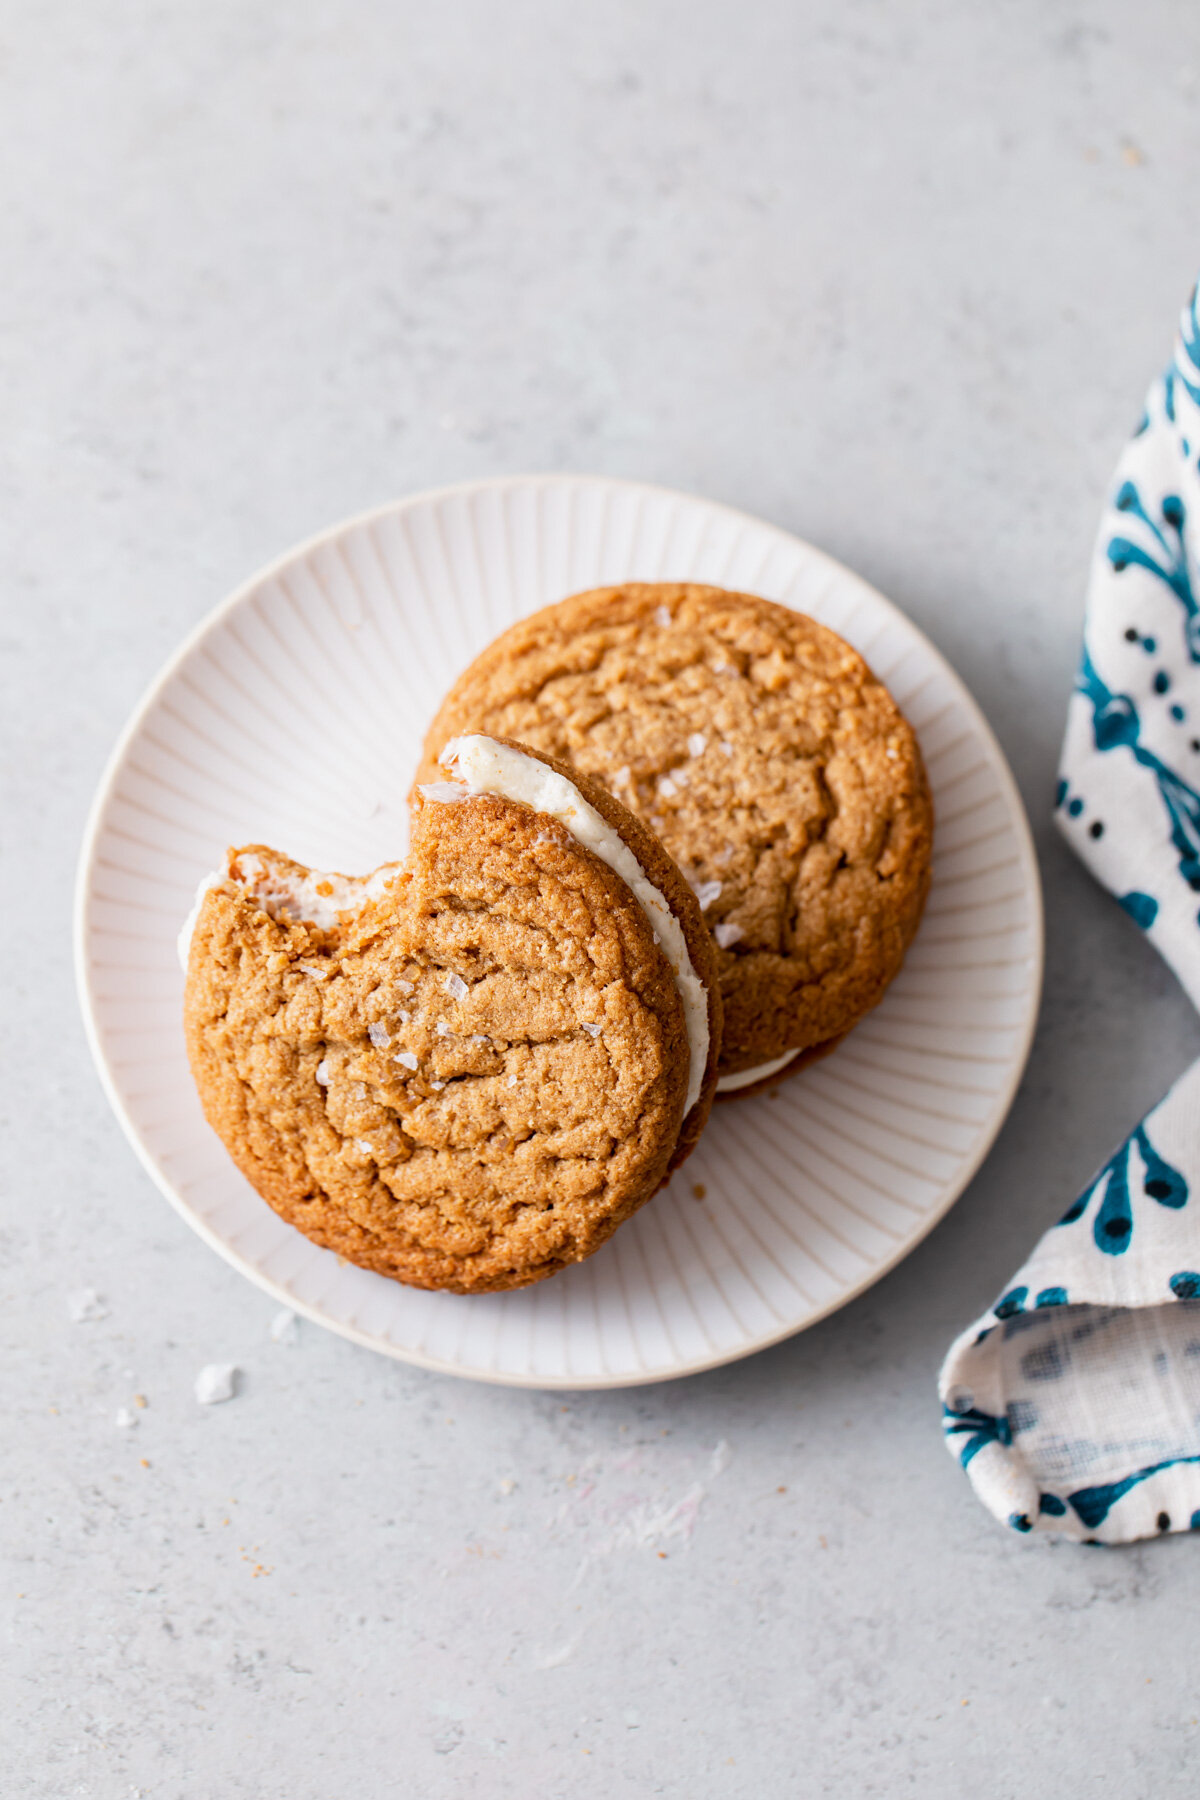 Flourless Peanut Butter Cookies with vanilla filling